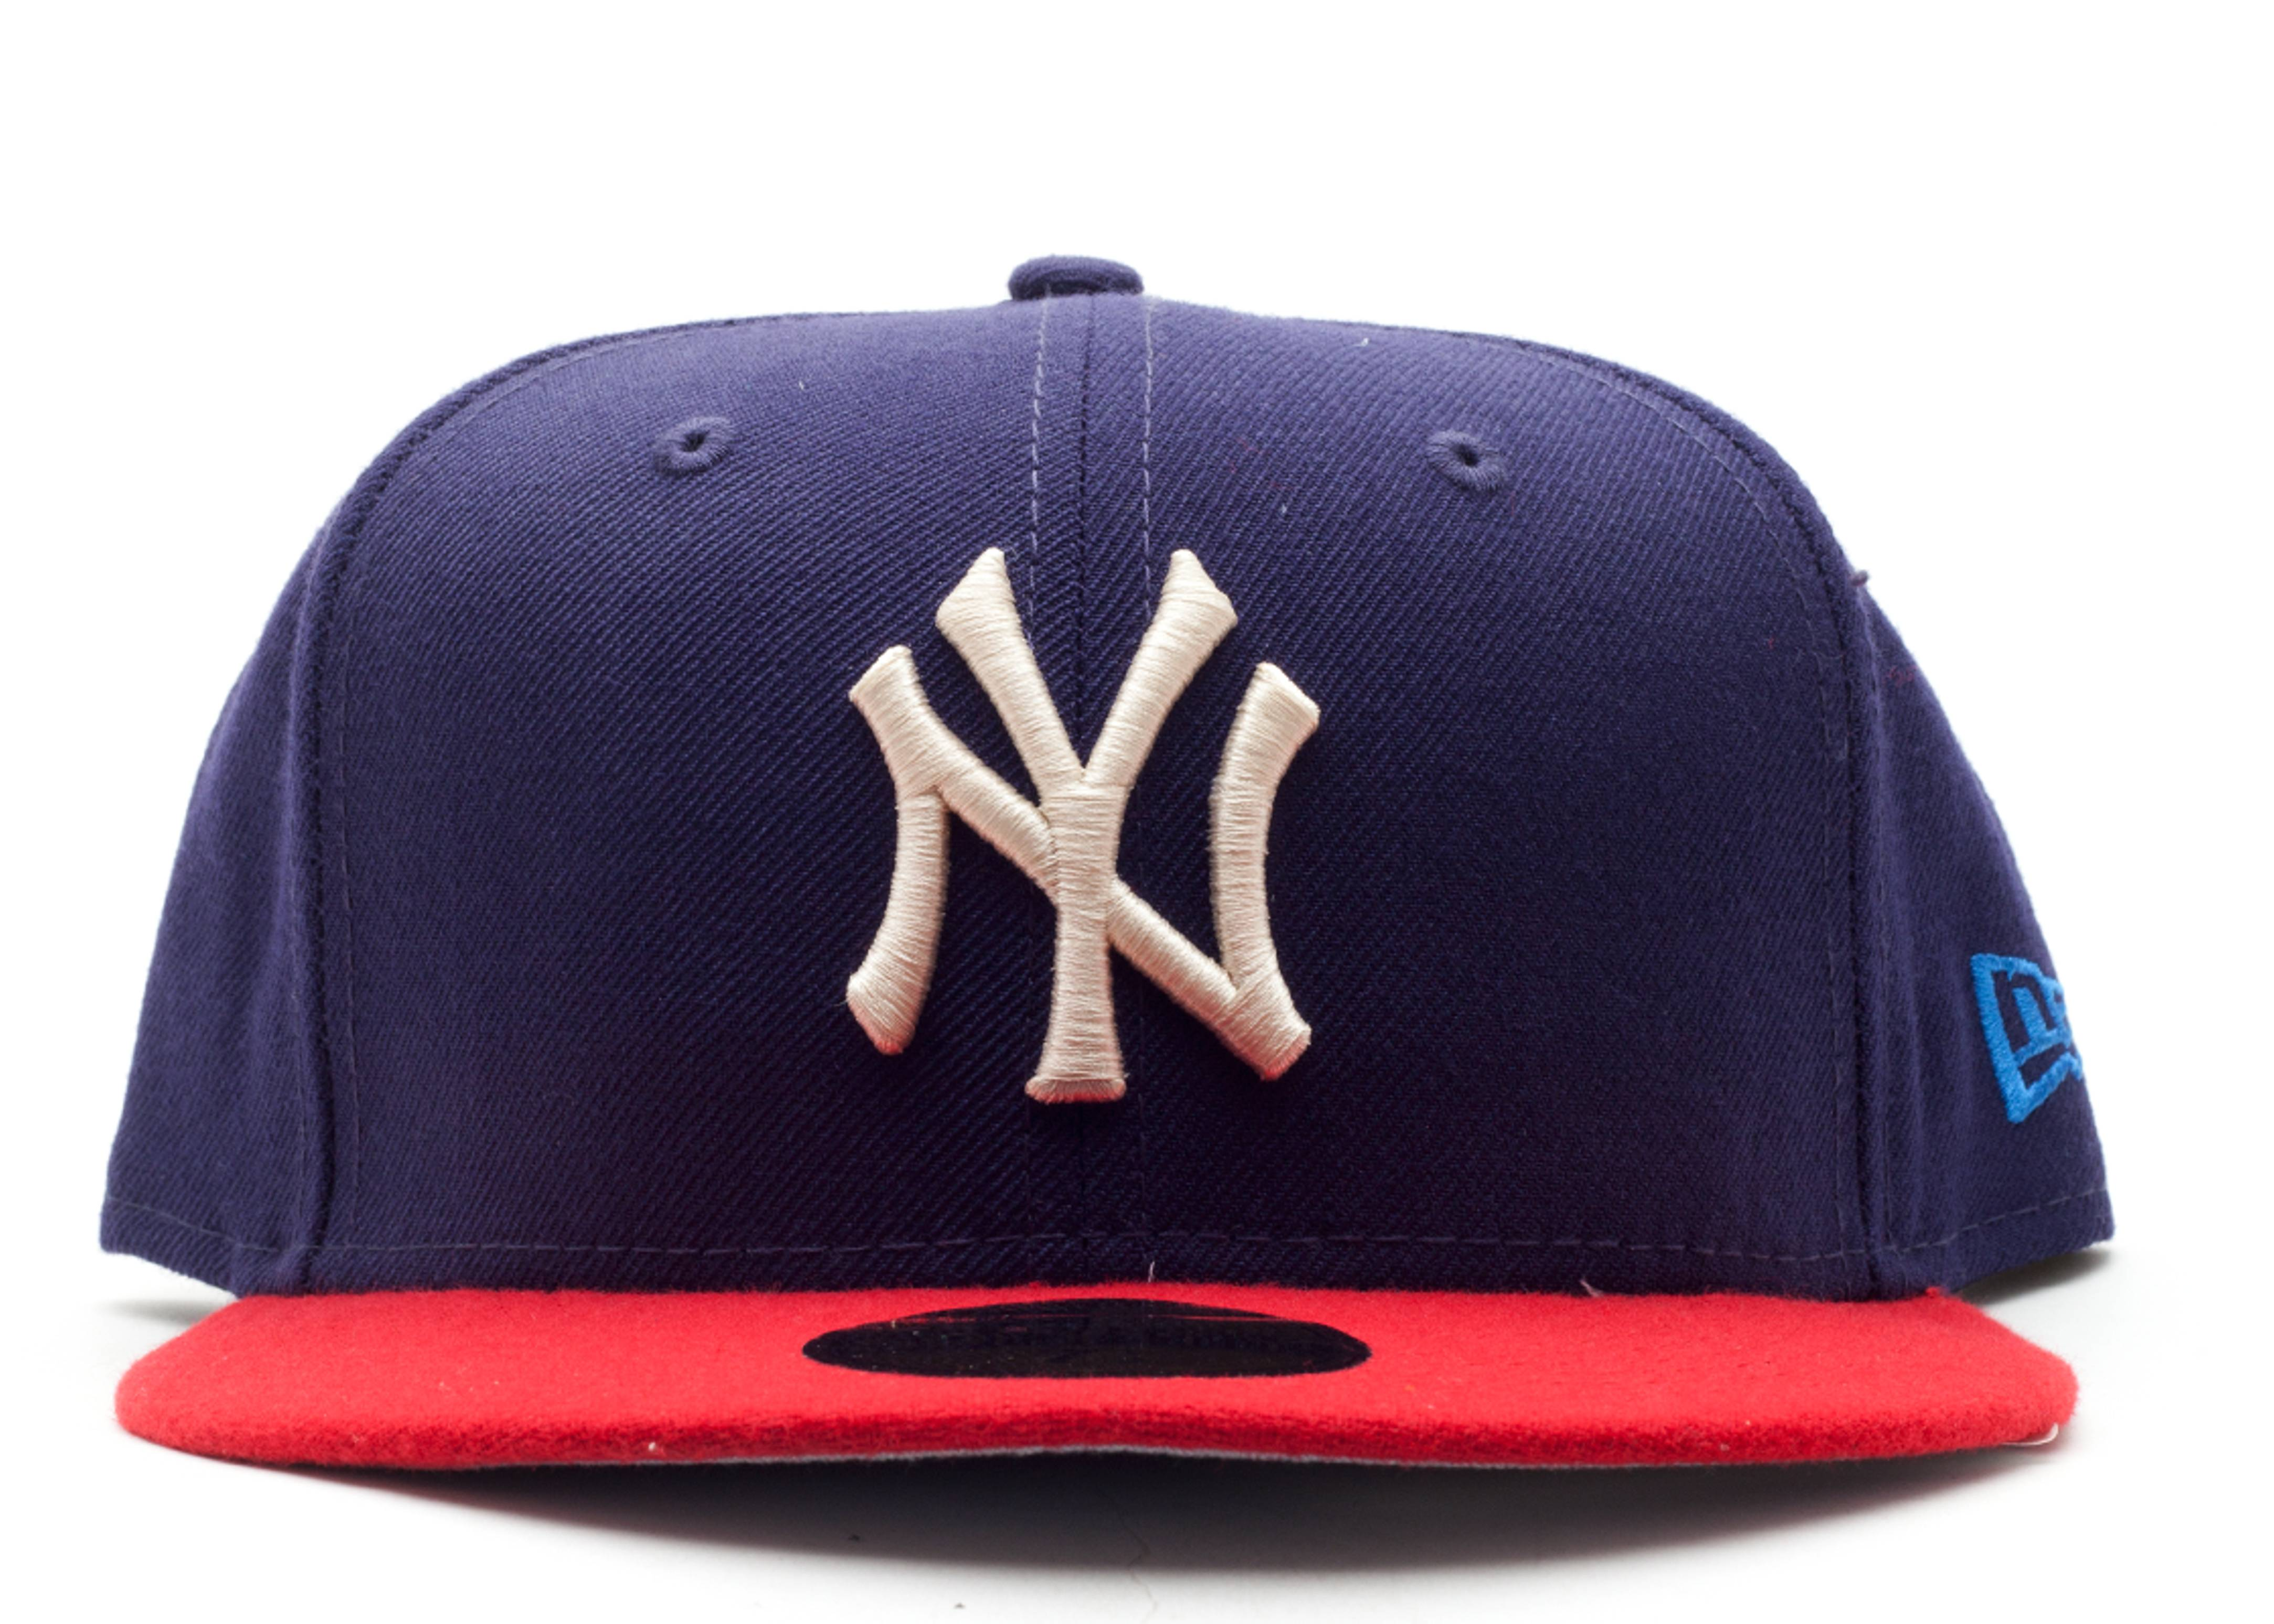 new york yankees fitted